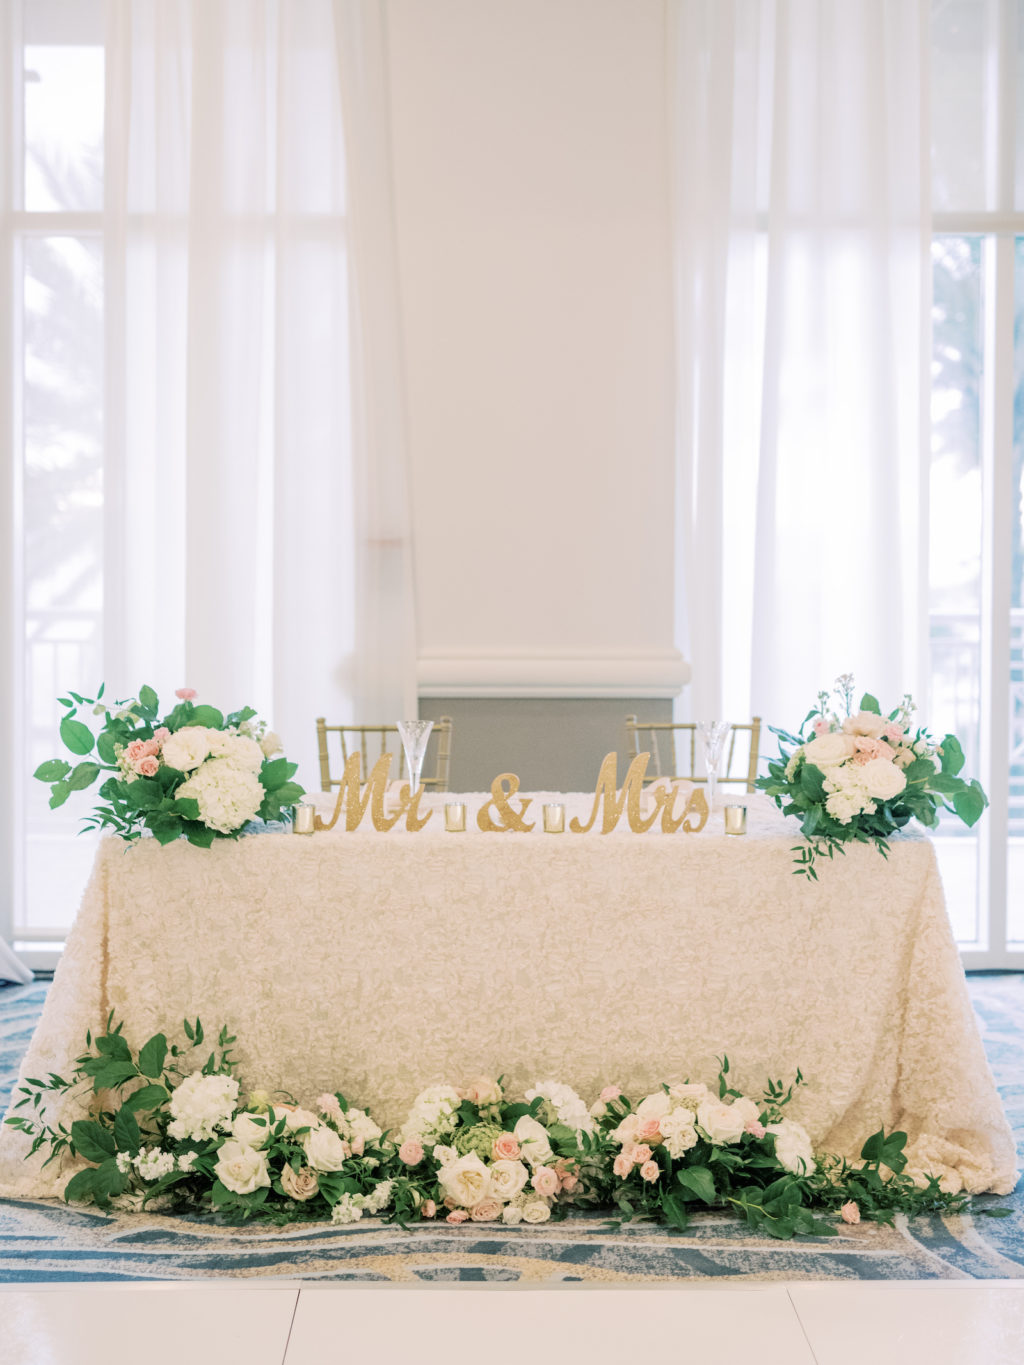 Timeless Romantic Sweetheart Table with Ivory Floral Linen, Lush Greenery and White, Blush Pink Roses and Hydrangeas, Gold Mr and Mrs Table Sign, Chiavari Chairs | Tampa Bay Wedding Planner Special Moments Event Planning | Wedding Rentals Kate Ryan Event Rentals | Wedding Venue Hyatt Regency Clearwater Beach